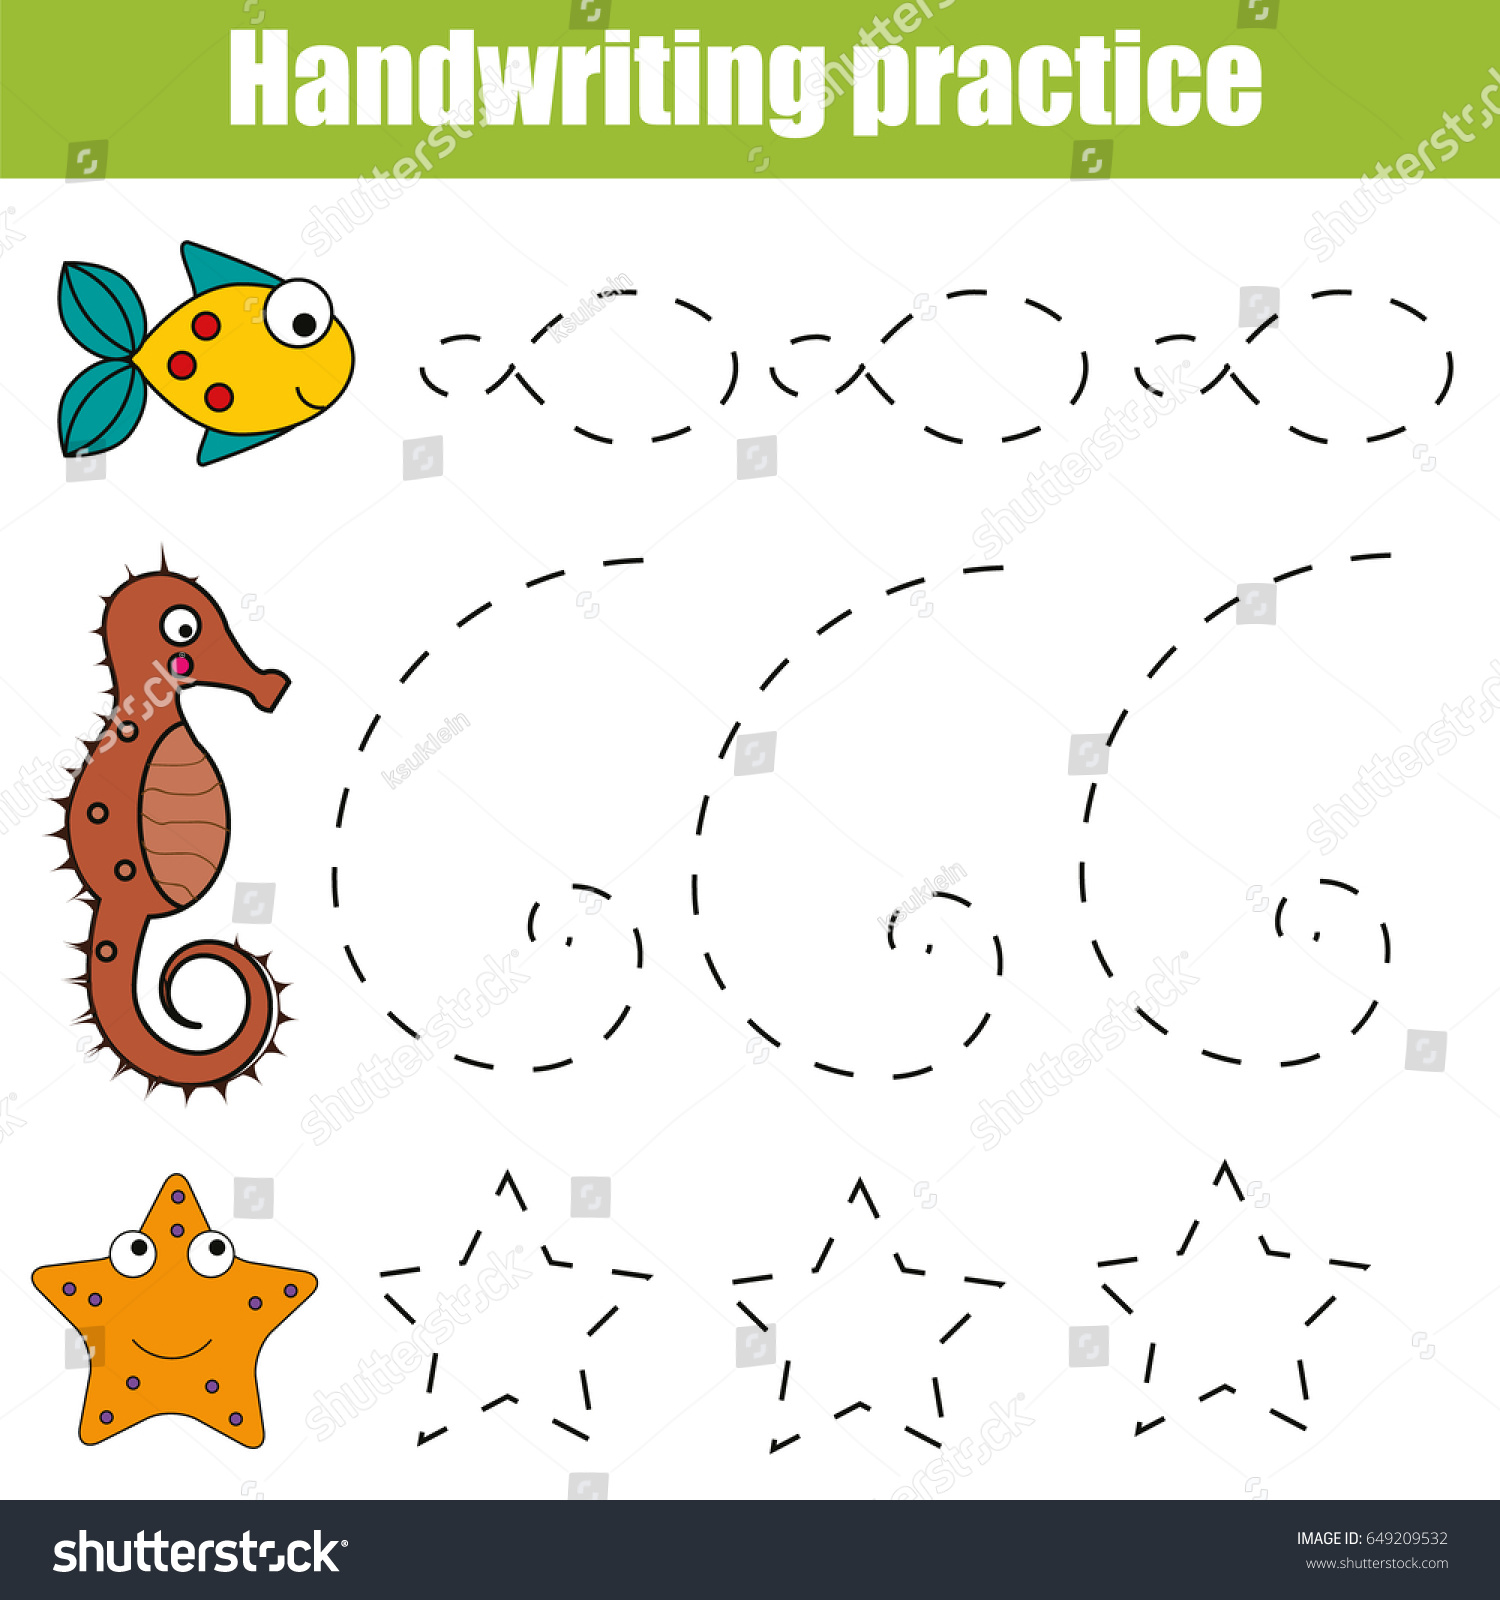 Handwriting Practice Sheet Educational Children Game Stock